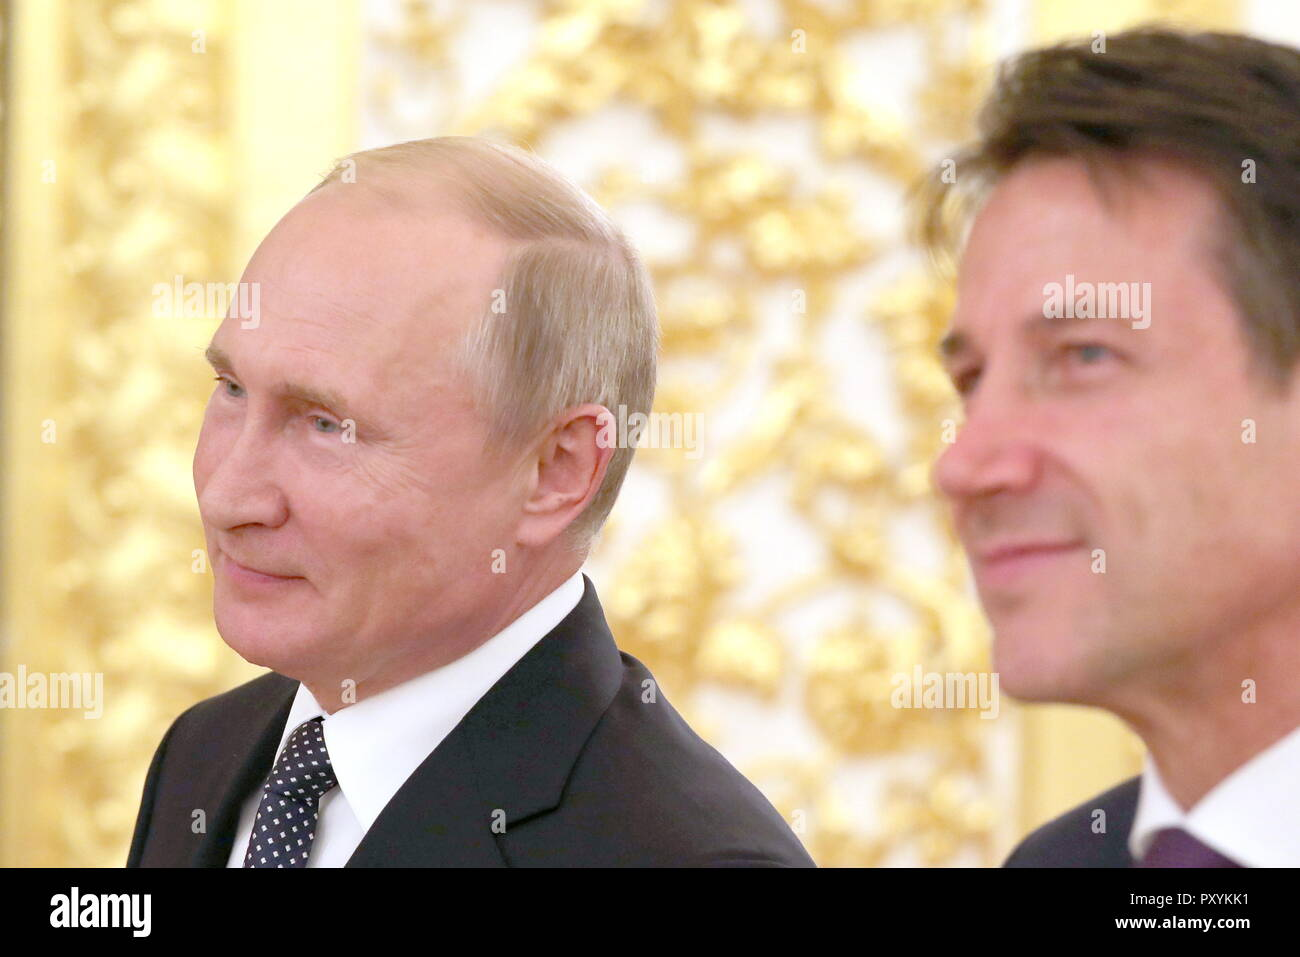 Moscow, Russia. 24th Oct, 2018. MOSCOW, RUSSIA - OCTOBER 24, 2018: Russia's President Vladimir Putin (L) and Italy's Prime Minister Giuseppe Conte attend a video conference to launch a REM (Russian Electric Motors) plant as part of a meeting with Italian businessmen at the Moscow Kremlin. Mikhail Klimentyev/Russian Presidential Press and Information Office/TASS Credit: ITAR-TASS News Agency/Alamy Live News - Stock Image